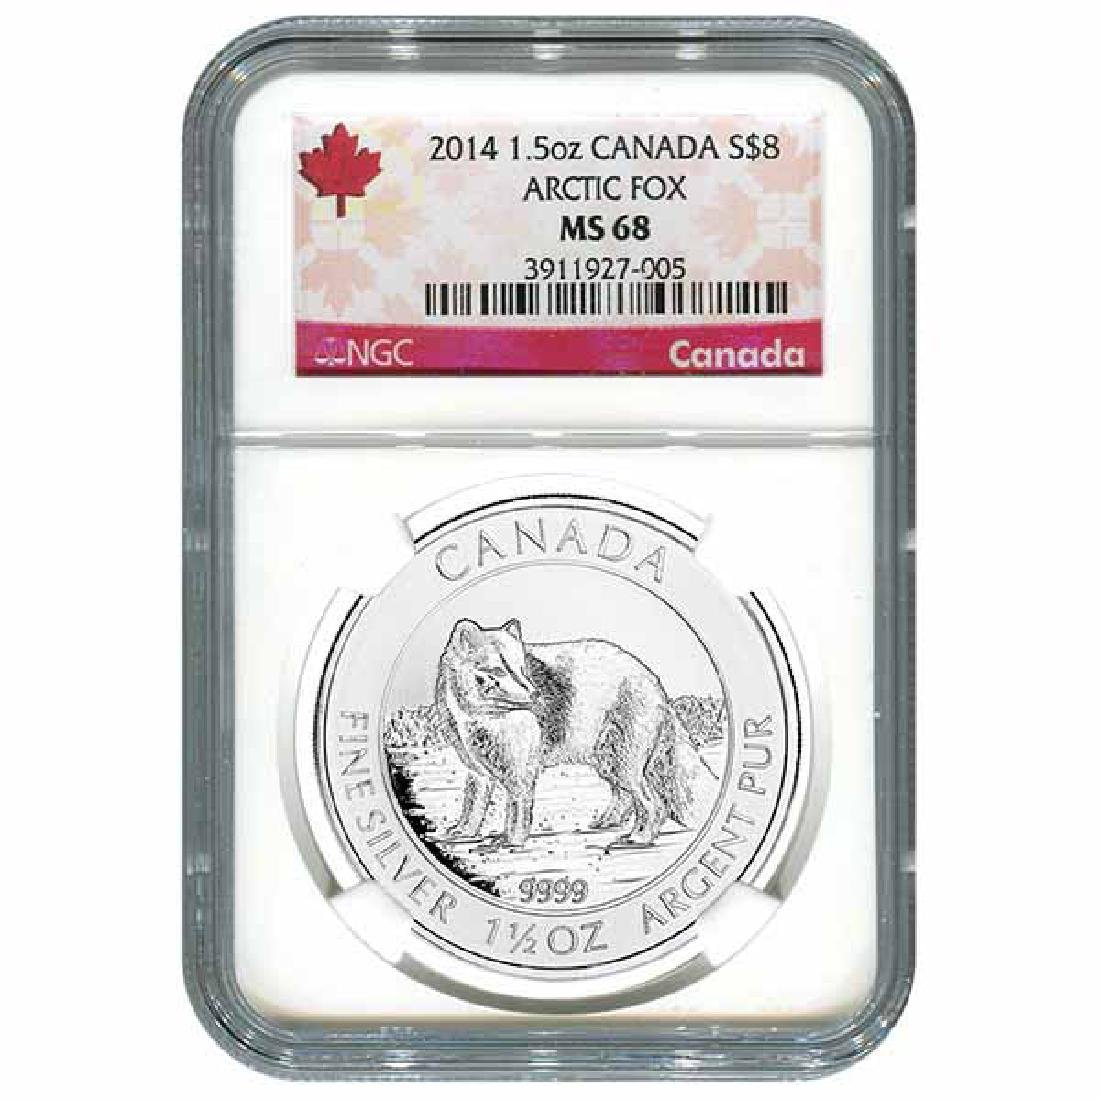 Certified 2014 Canadian Silver Arctic Fox 1.5 oz MS68 N